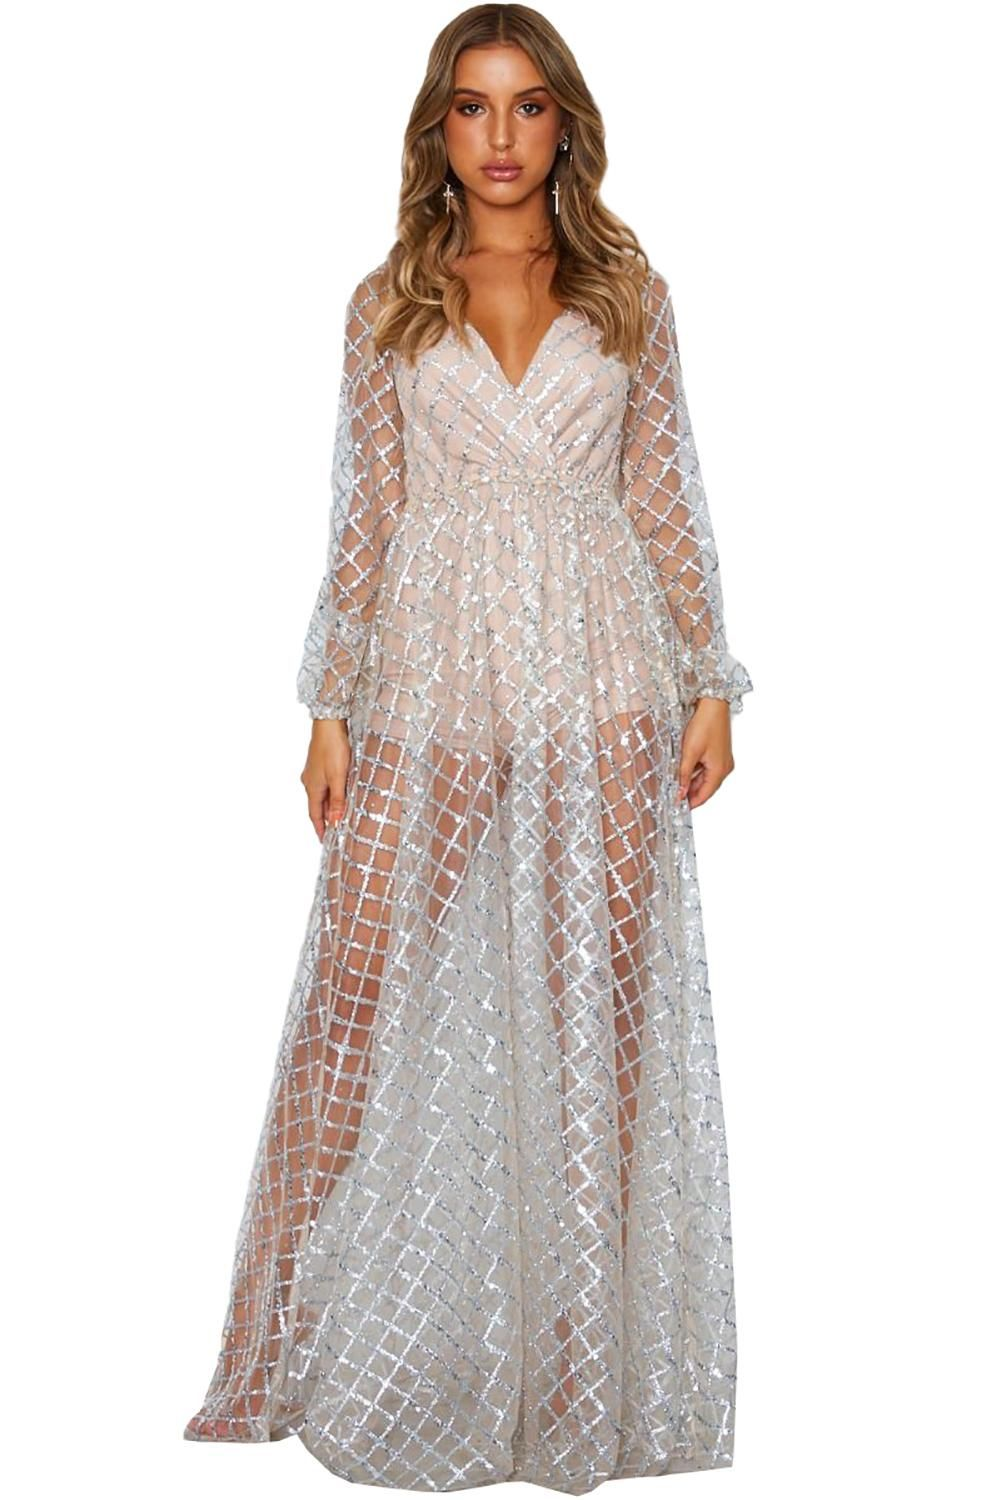 Silver Pattern Sheer Gown V neck Full Sleeve Regular Party